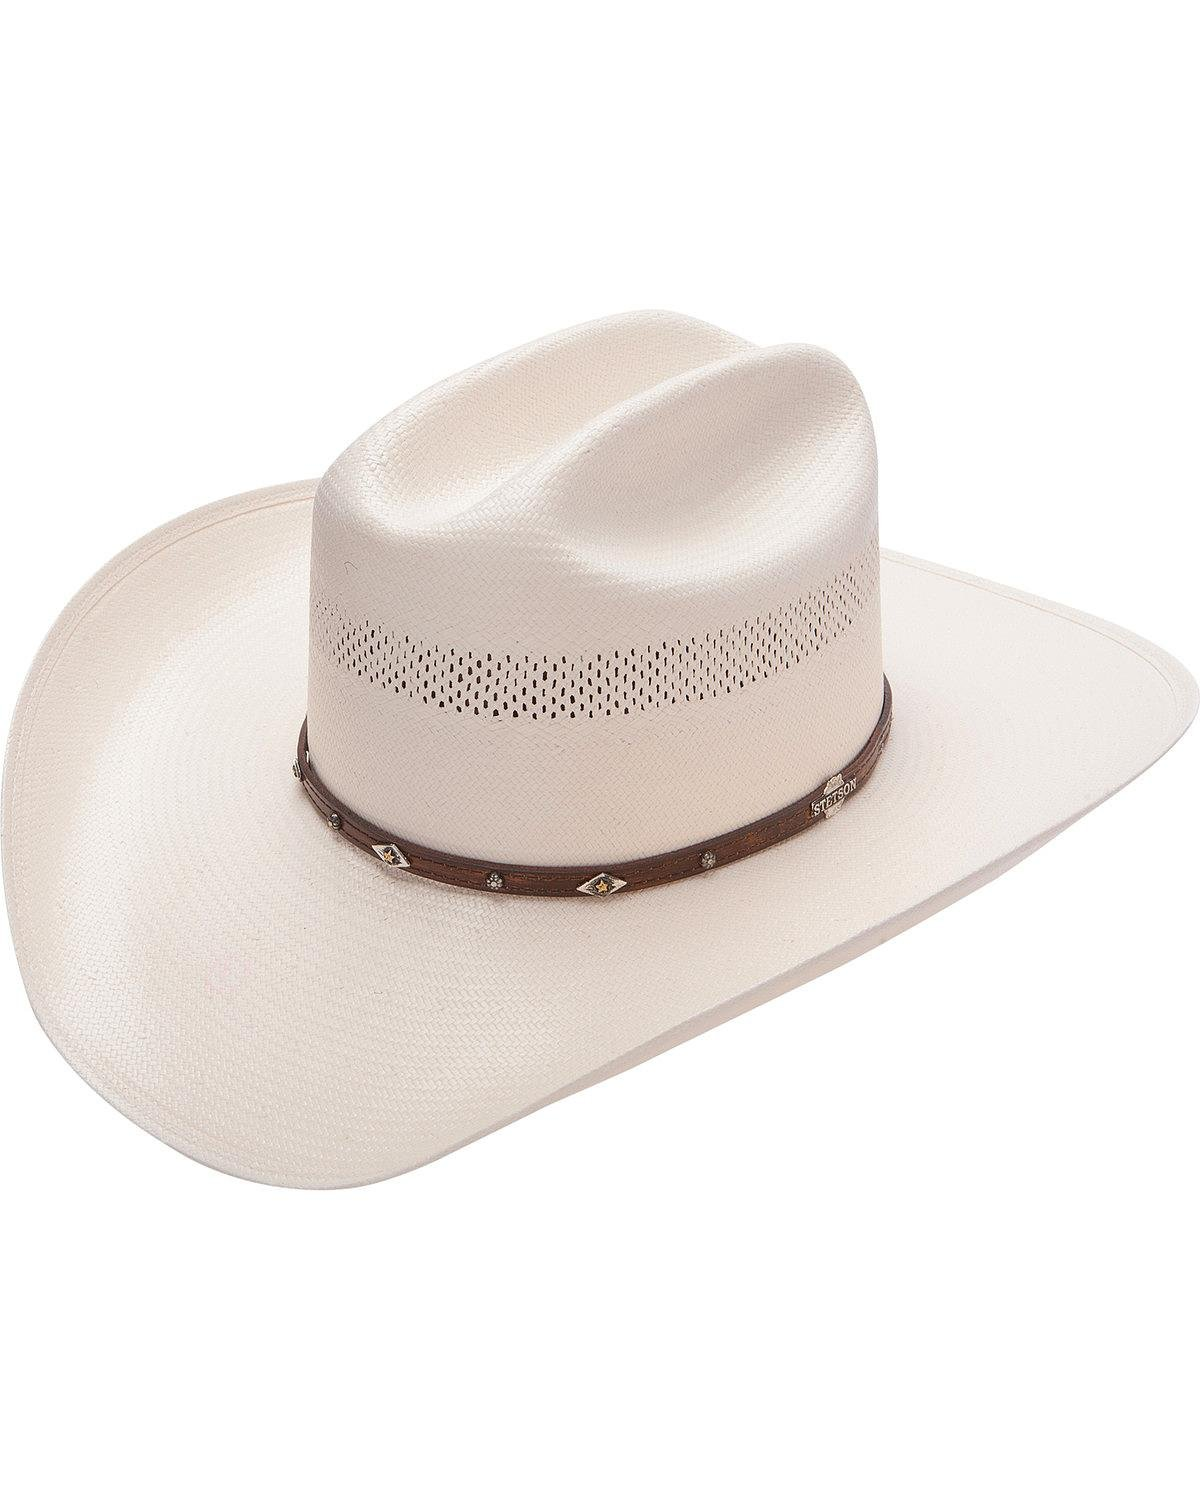 Stetson Men's Lobo 10X Straw All-Around Vent Star Concho Band Cowboy Hat Natural 7 5/8